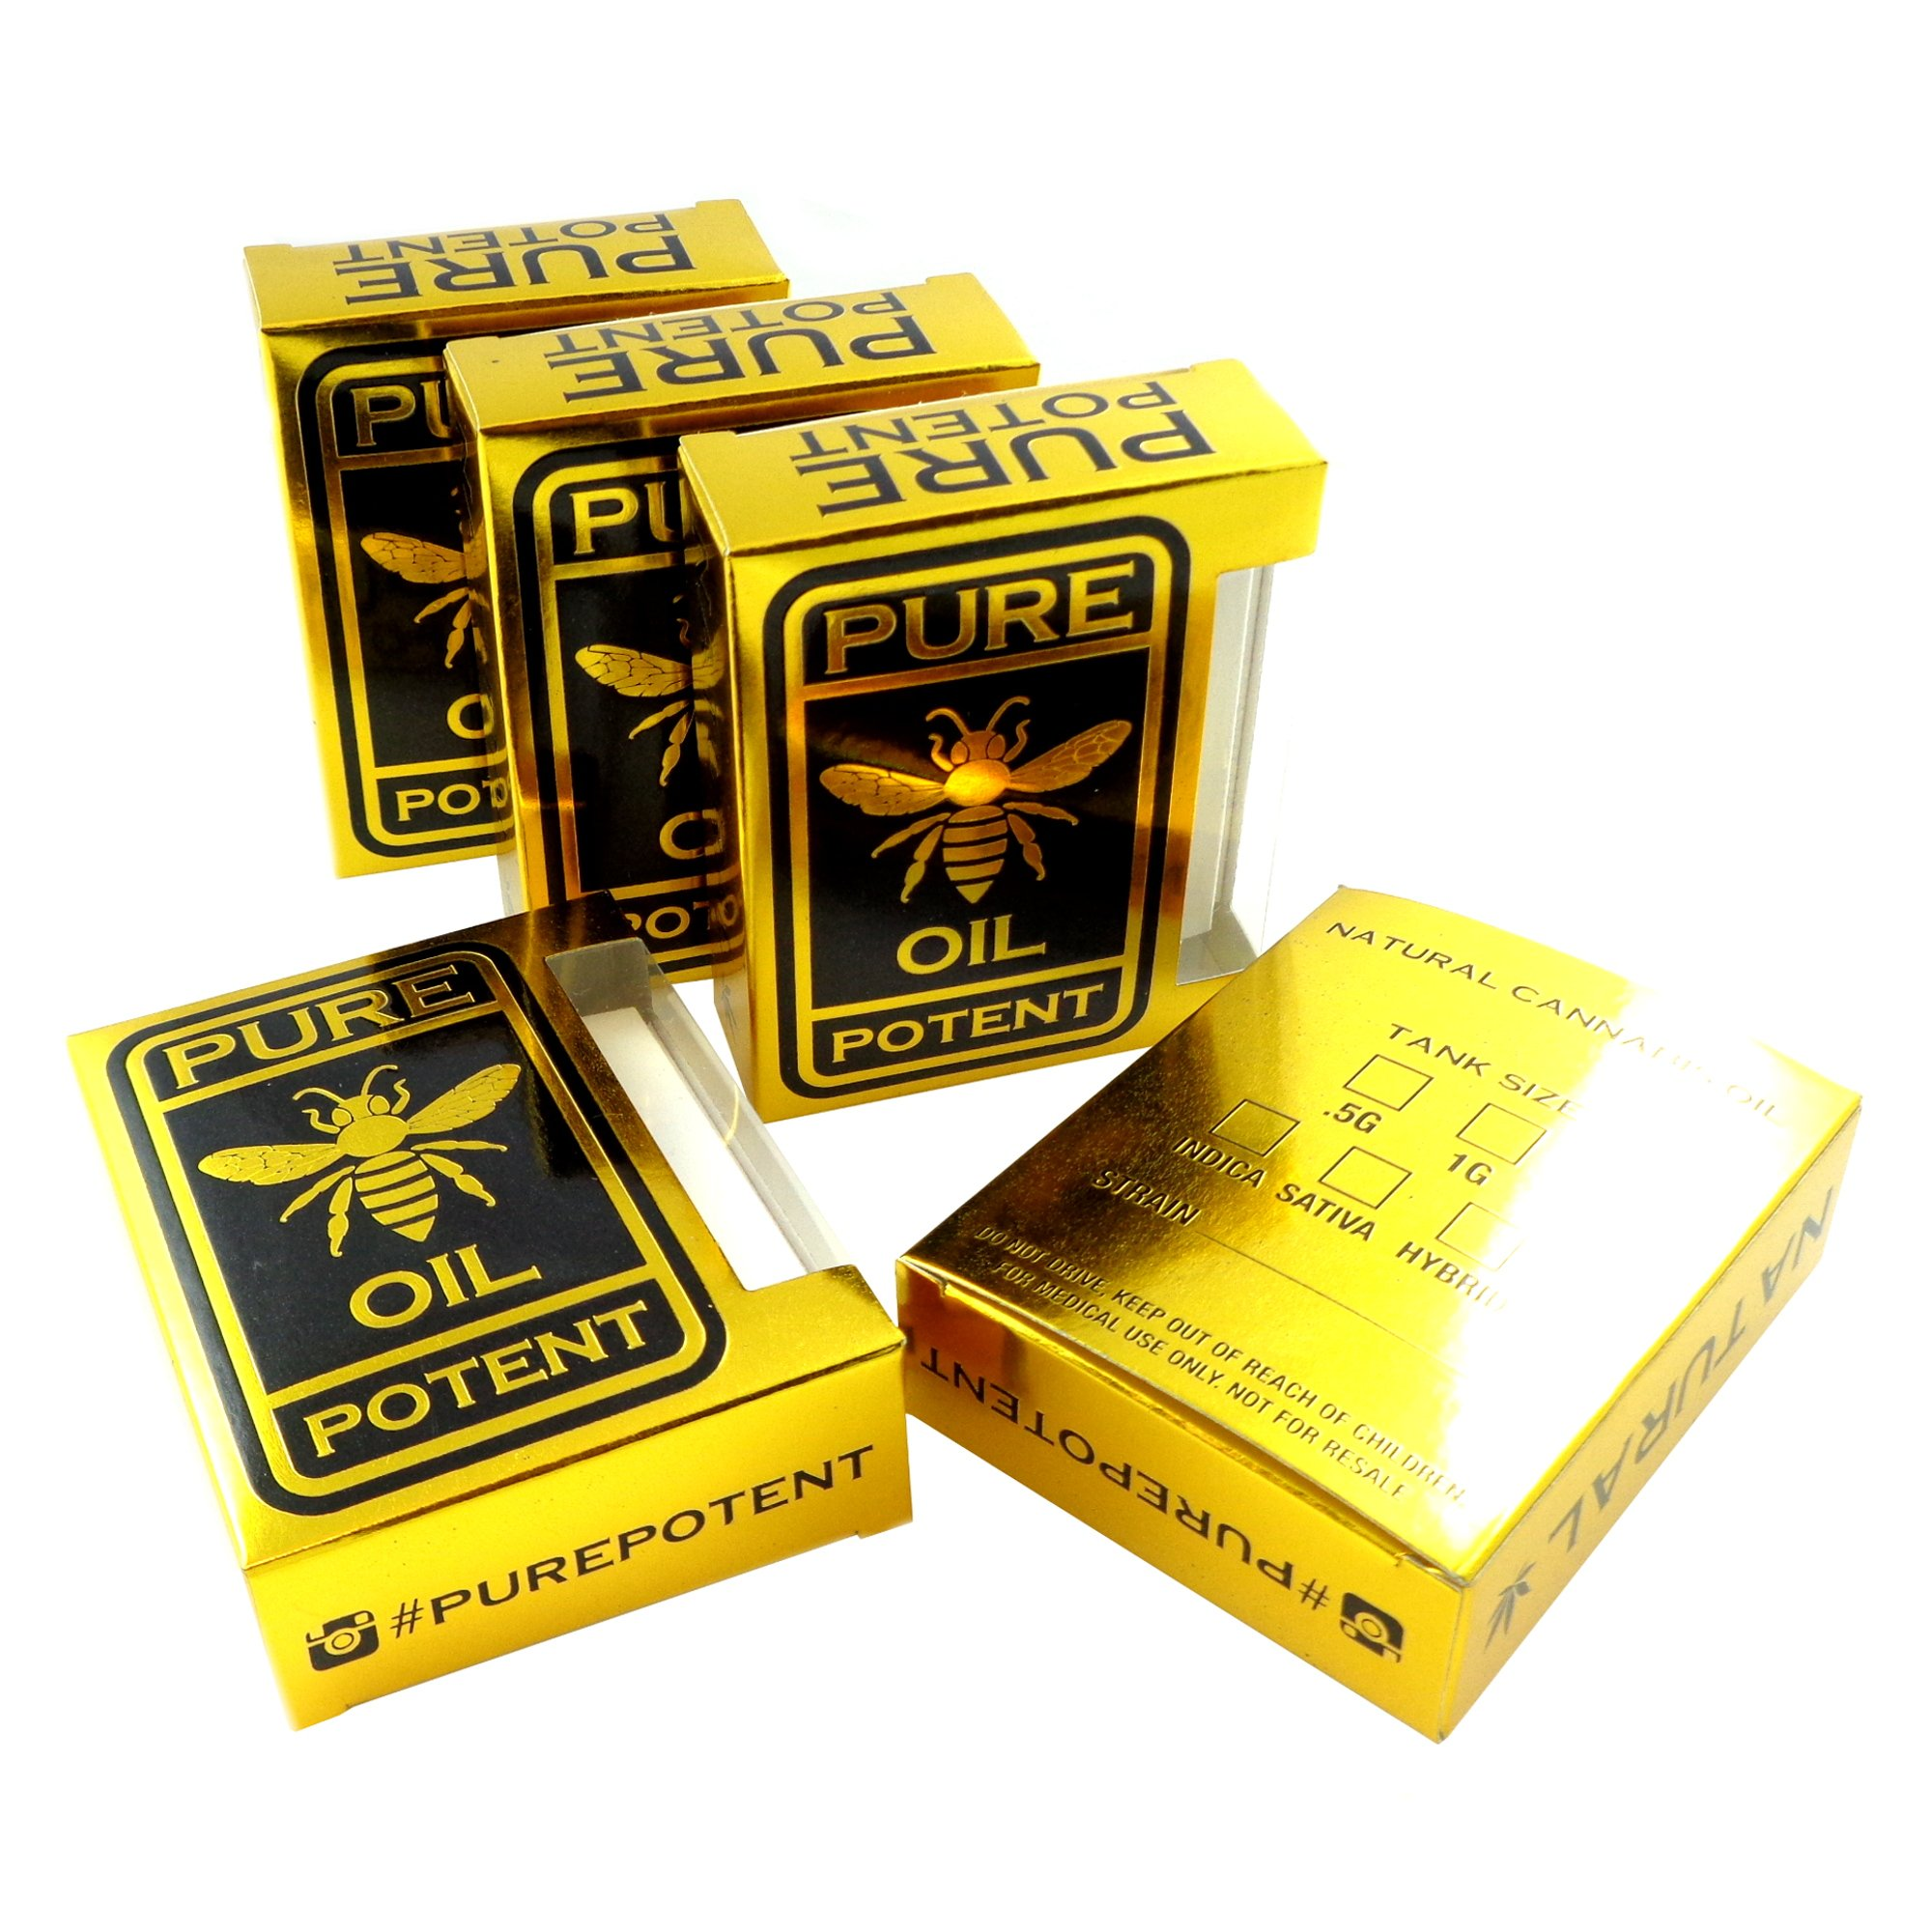 250 Solid Gold Pure Potent Oil Empty Display Concentrate Packaging Boxes VB-005